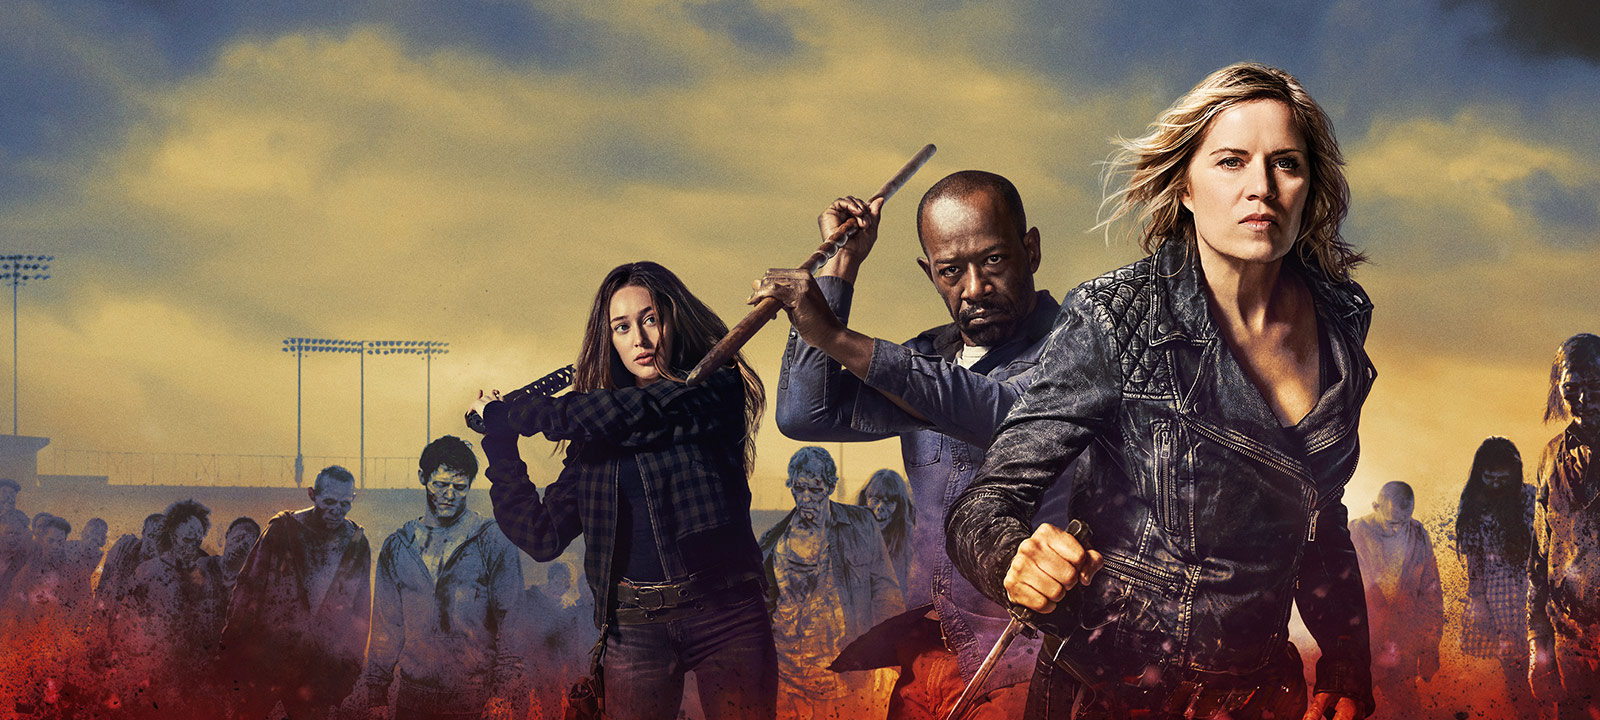 fear-the-walking-dead-season-4-key-art-madison-dickens-morgan-james-800×600-2